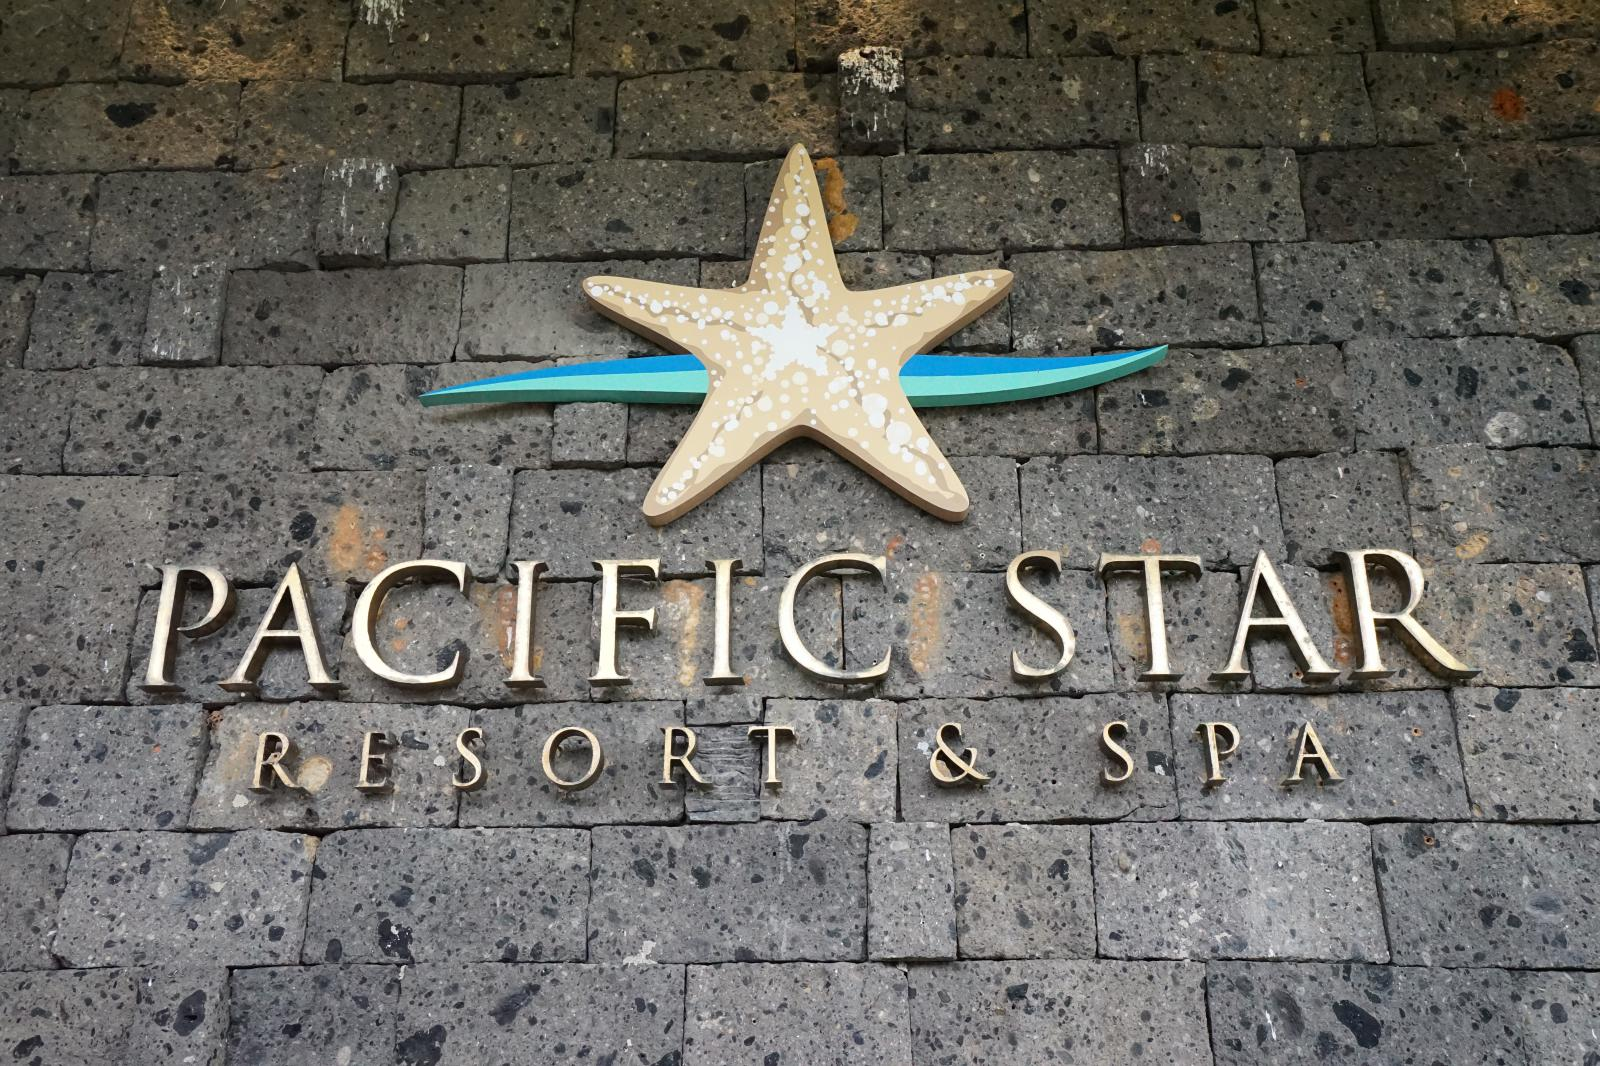 Pacific Star Hotel